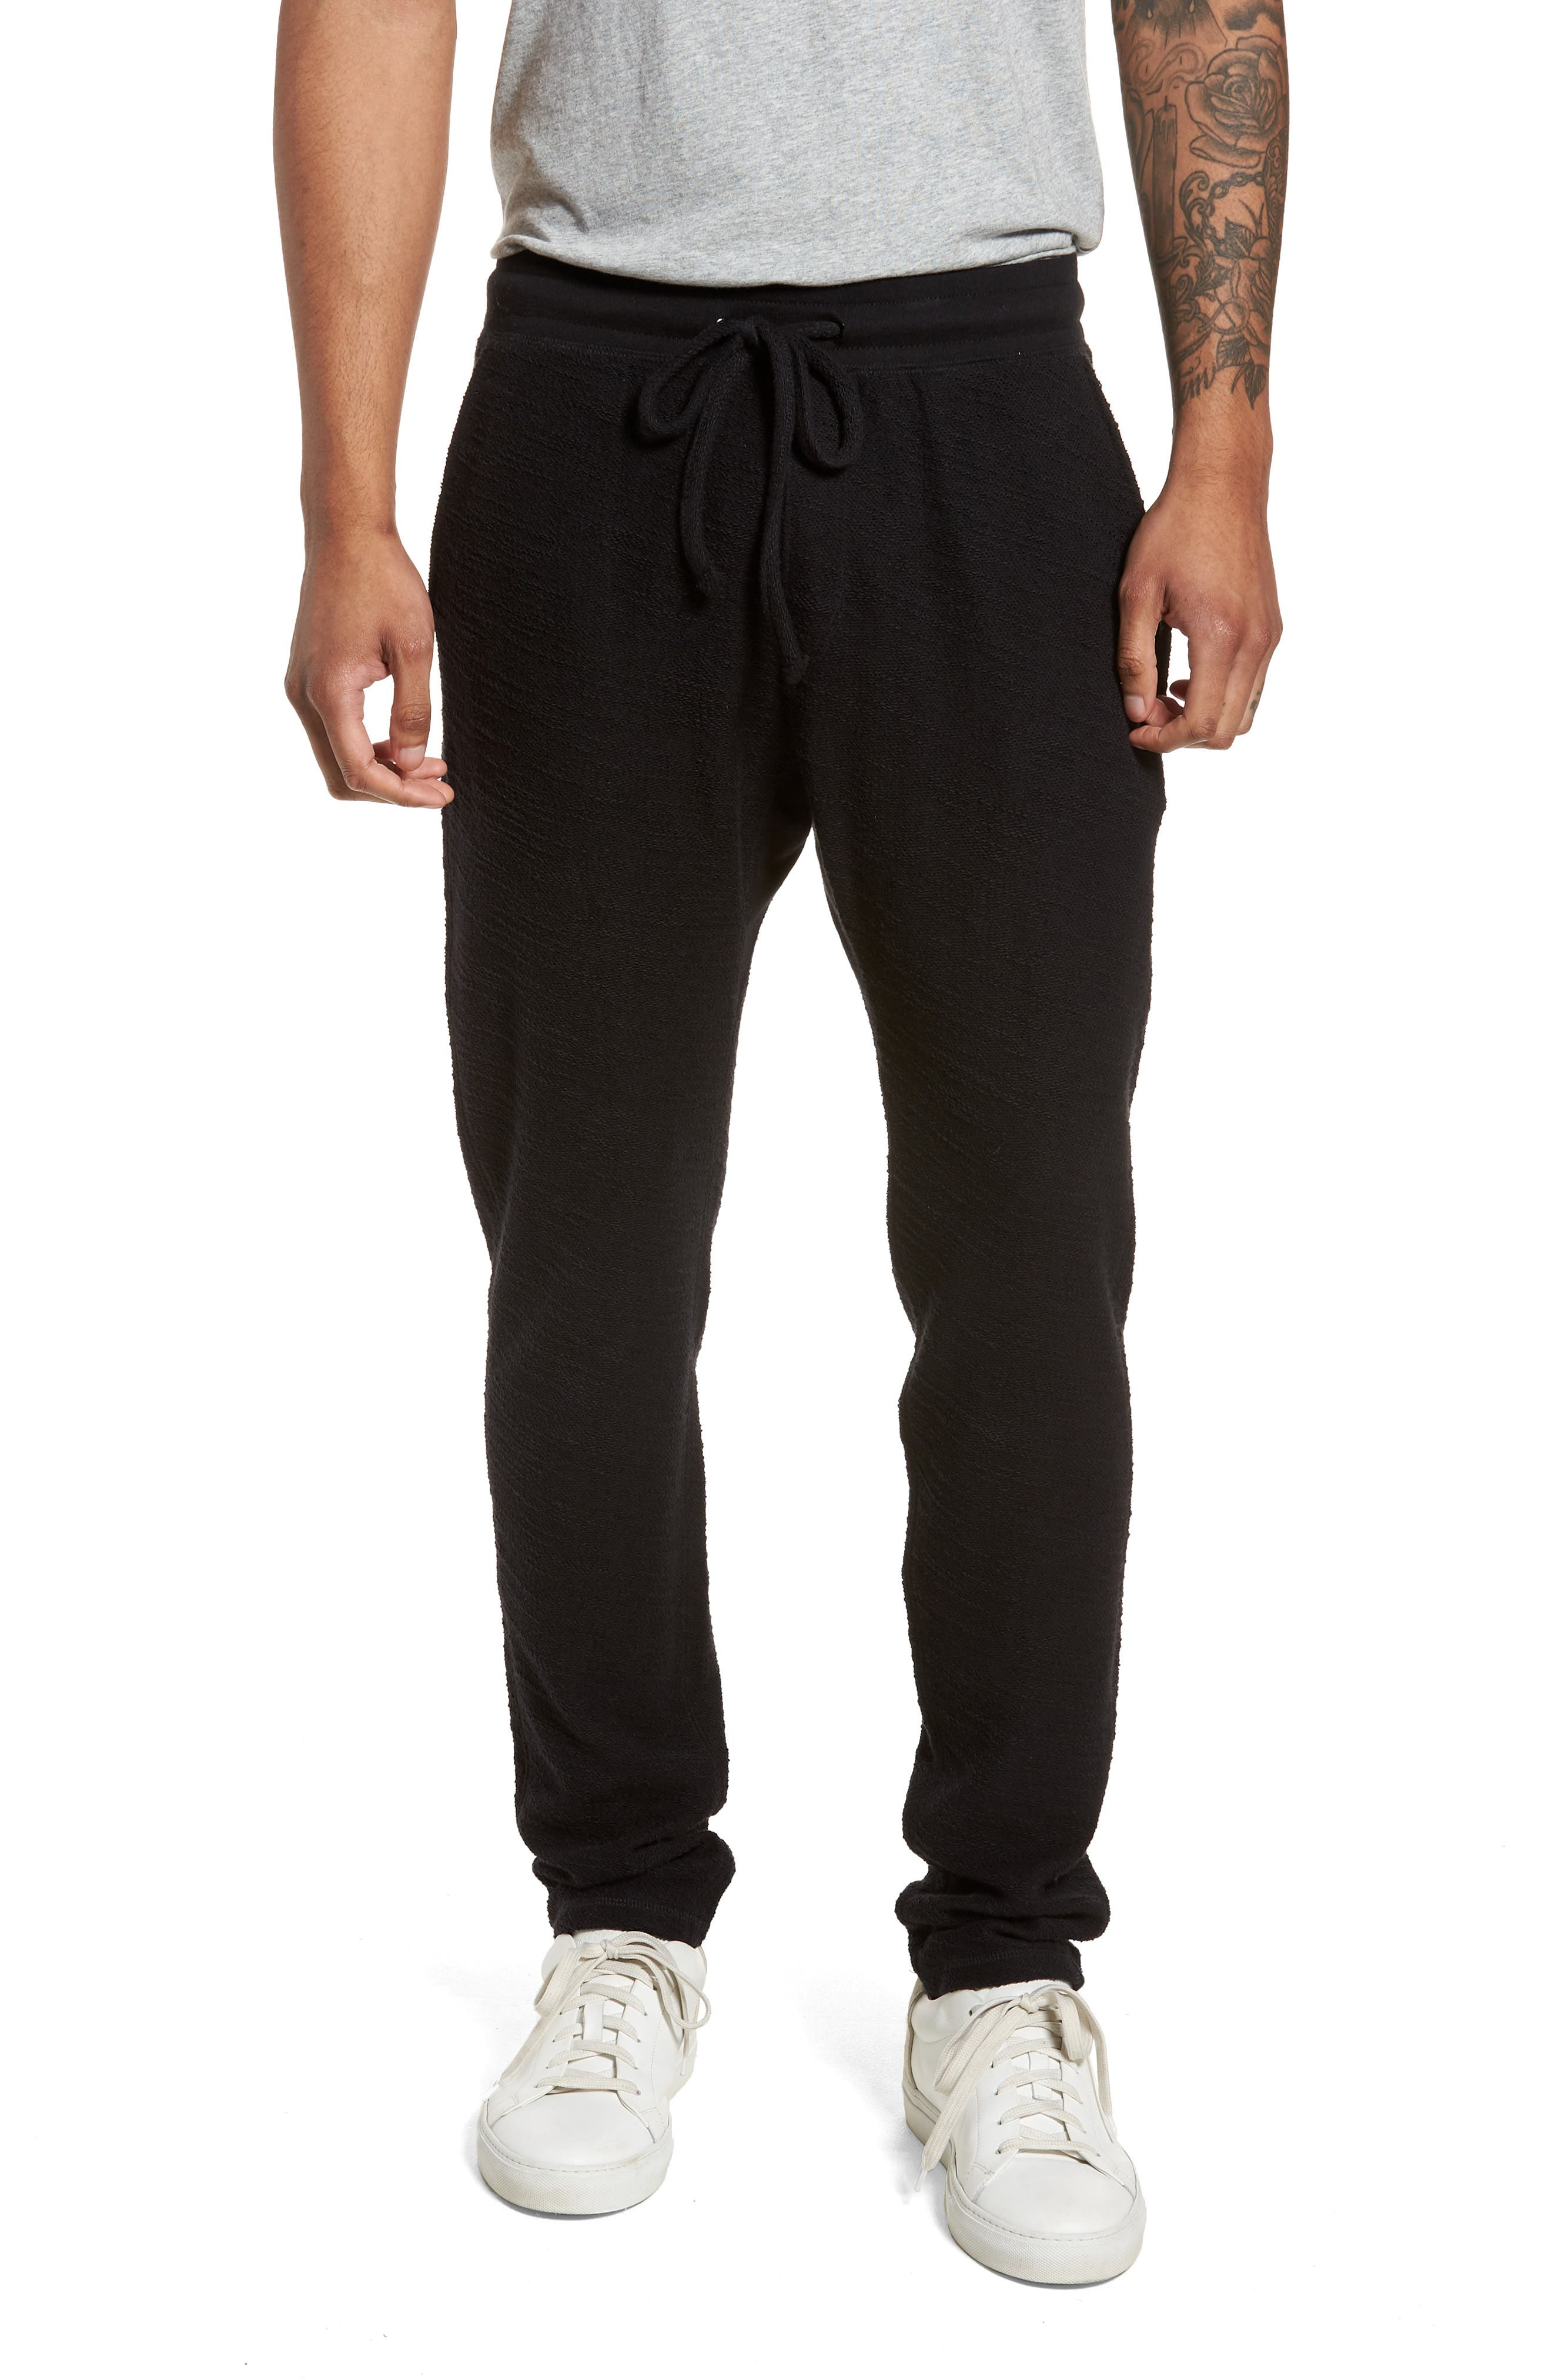 Alternate Image 1 Selected - Goodlife Terry Cloth Cotton Blend Pants